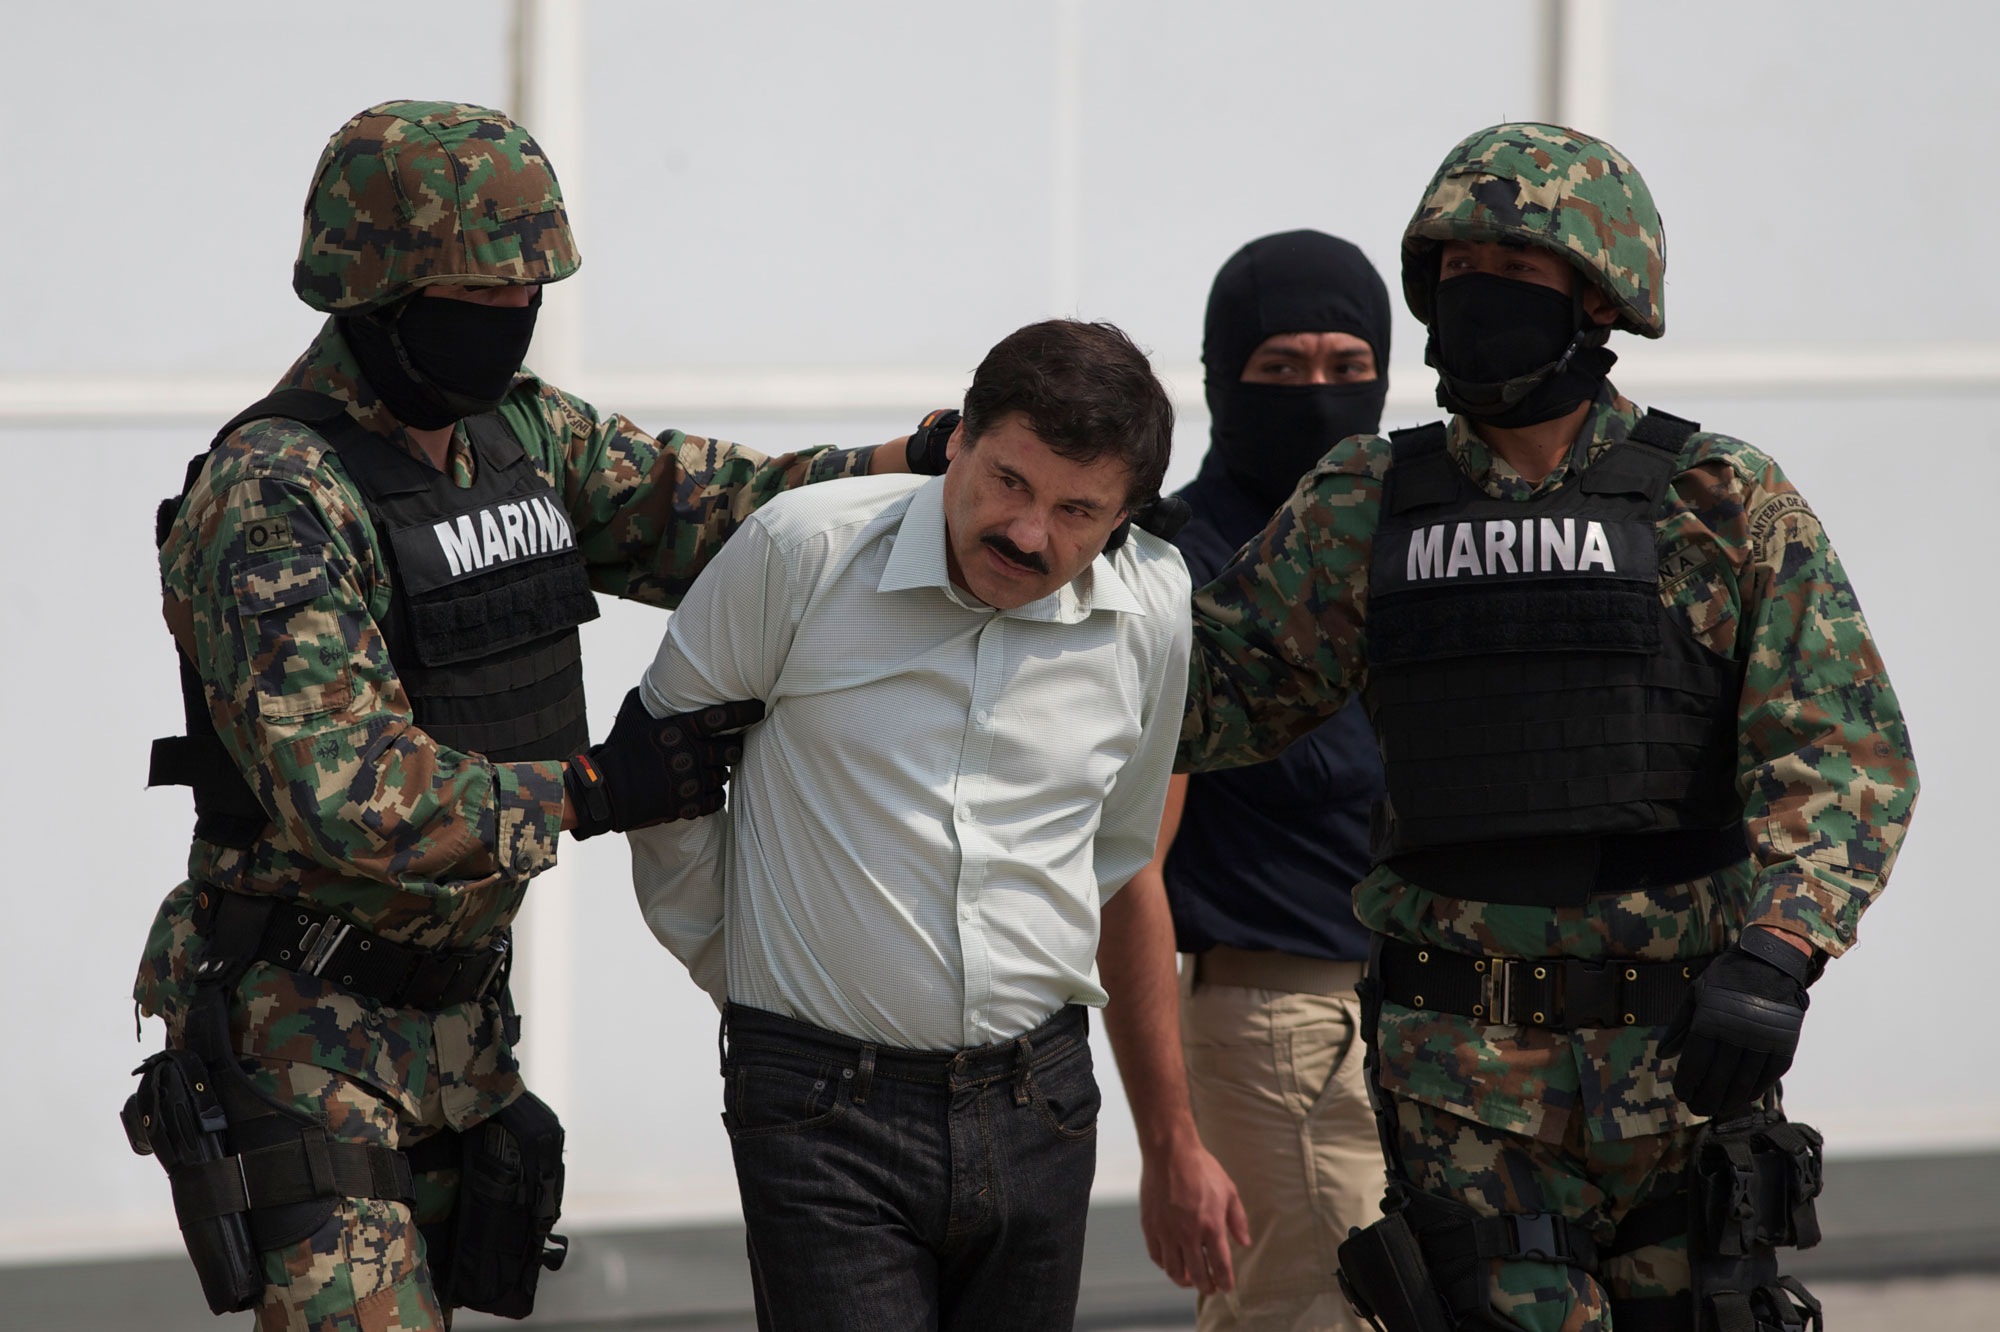 "<p>In this Saturday, Feb. 22, 2014 file photo, Joaquin ""El Chapo"" Guzman, center, is escorted to a helicopter in handcuffs by Mexican navy marines at a hanger in Mexico City, after he was captured overnight in the beach resort town of Mazatlan.</p>"